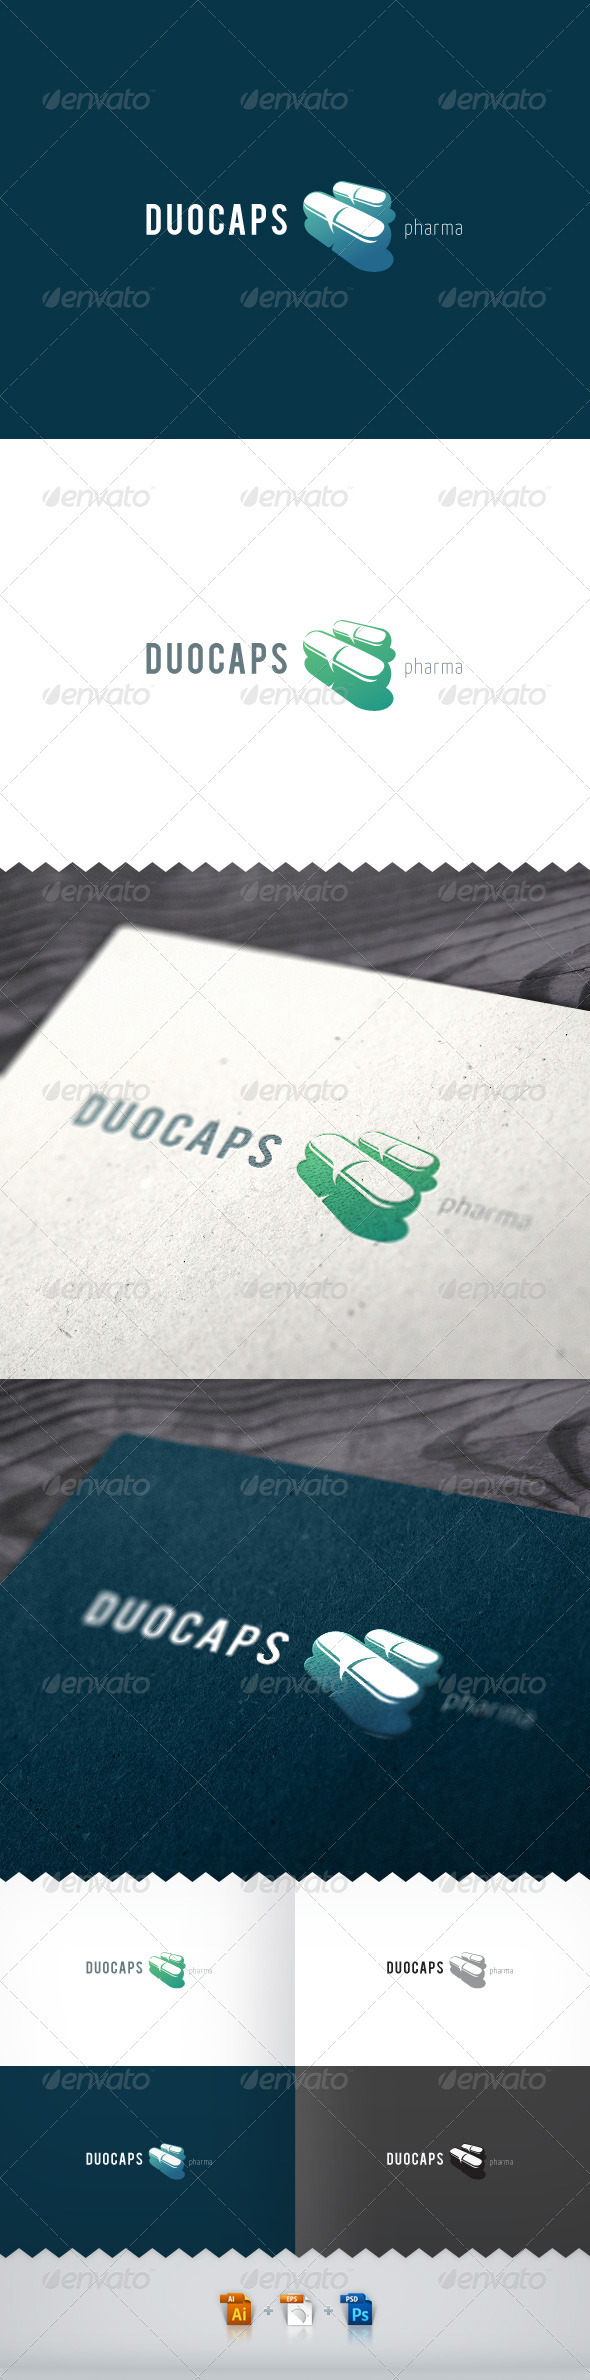 Duocaps Pharma Logo - Objects Logo Templates